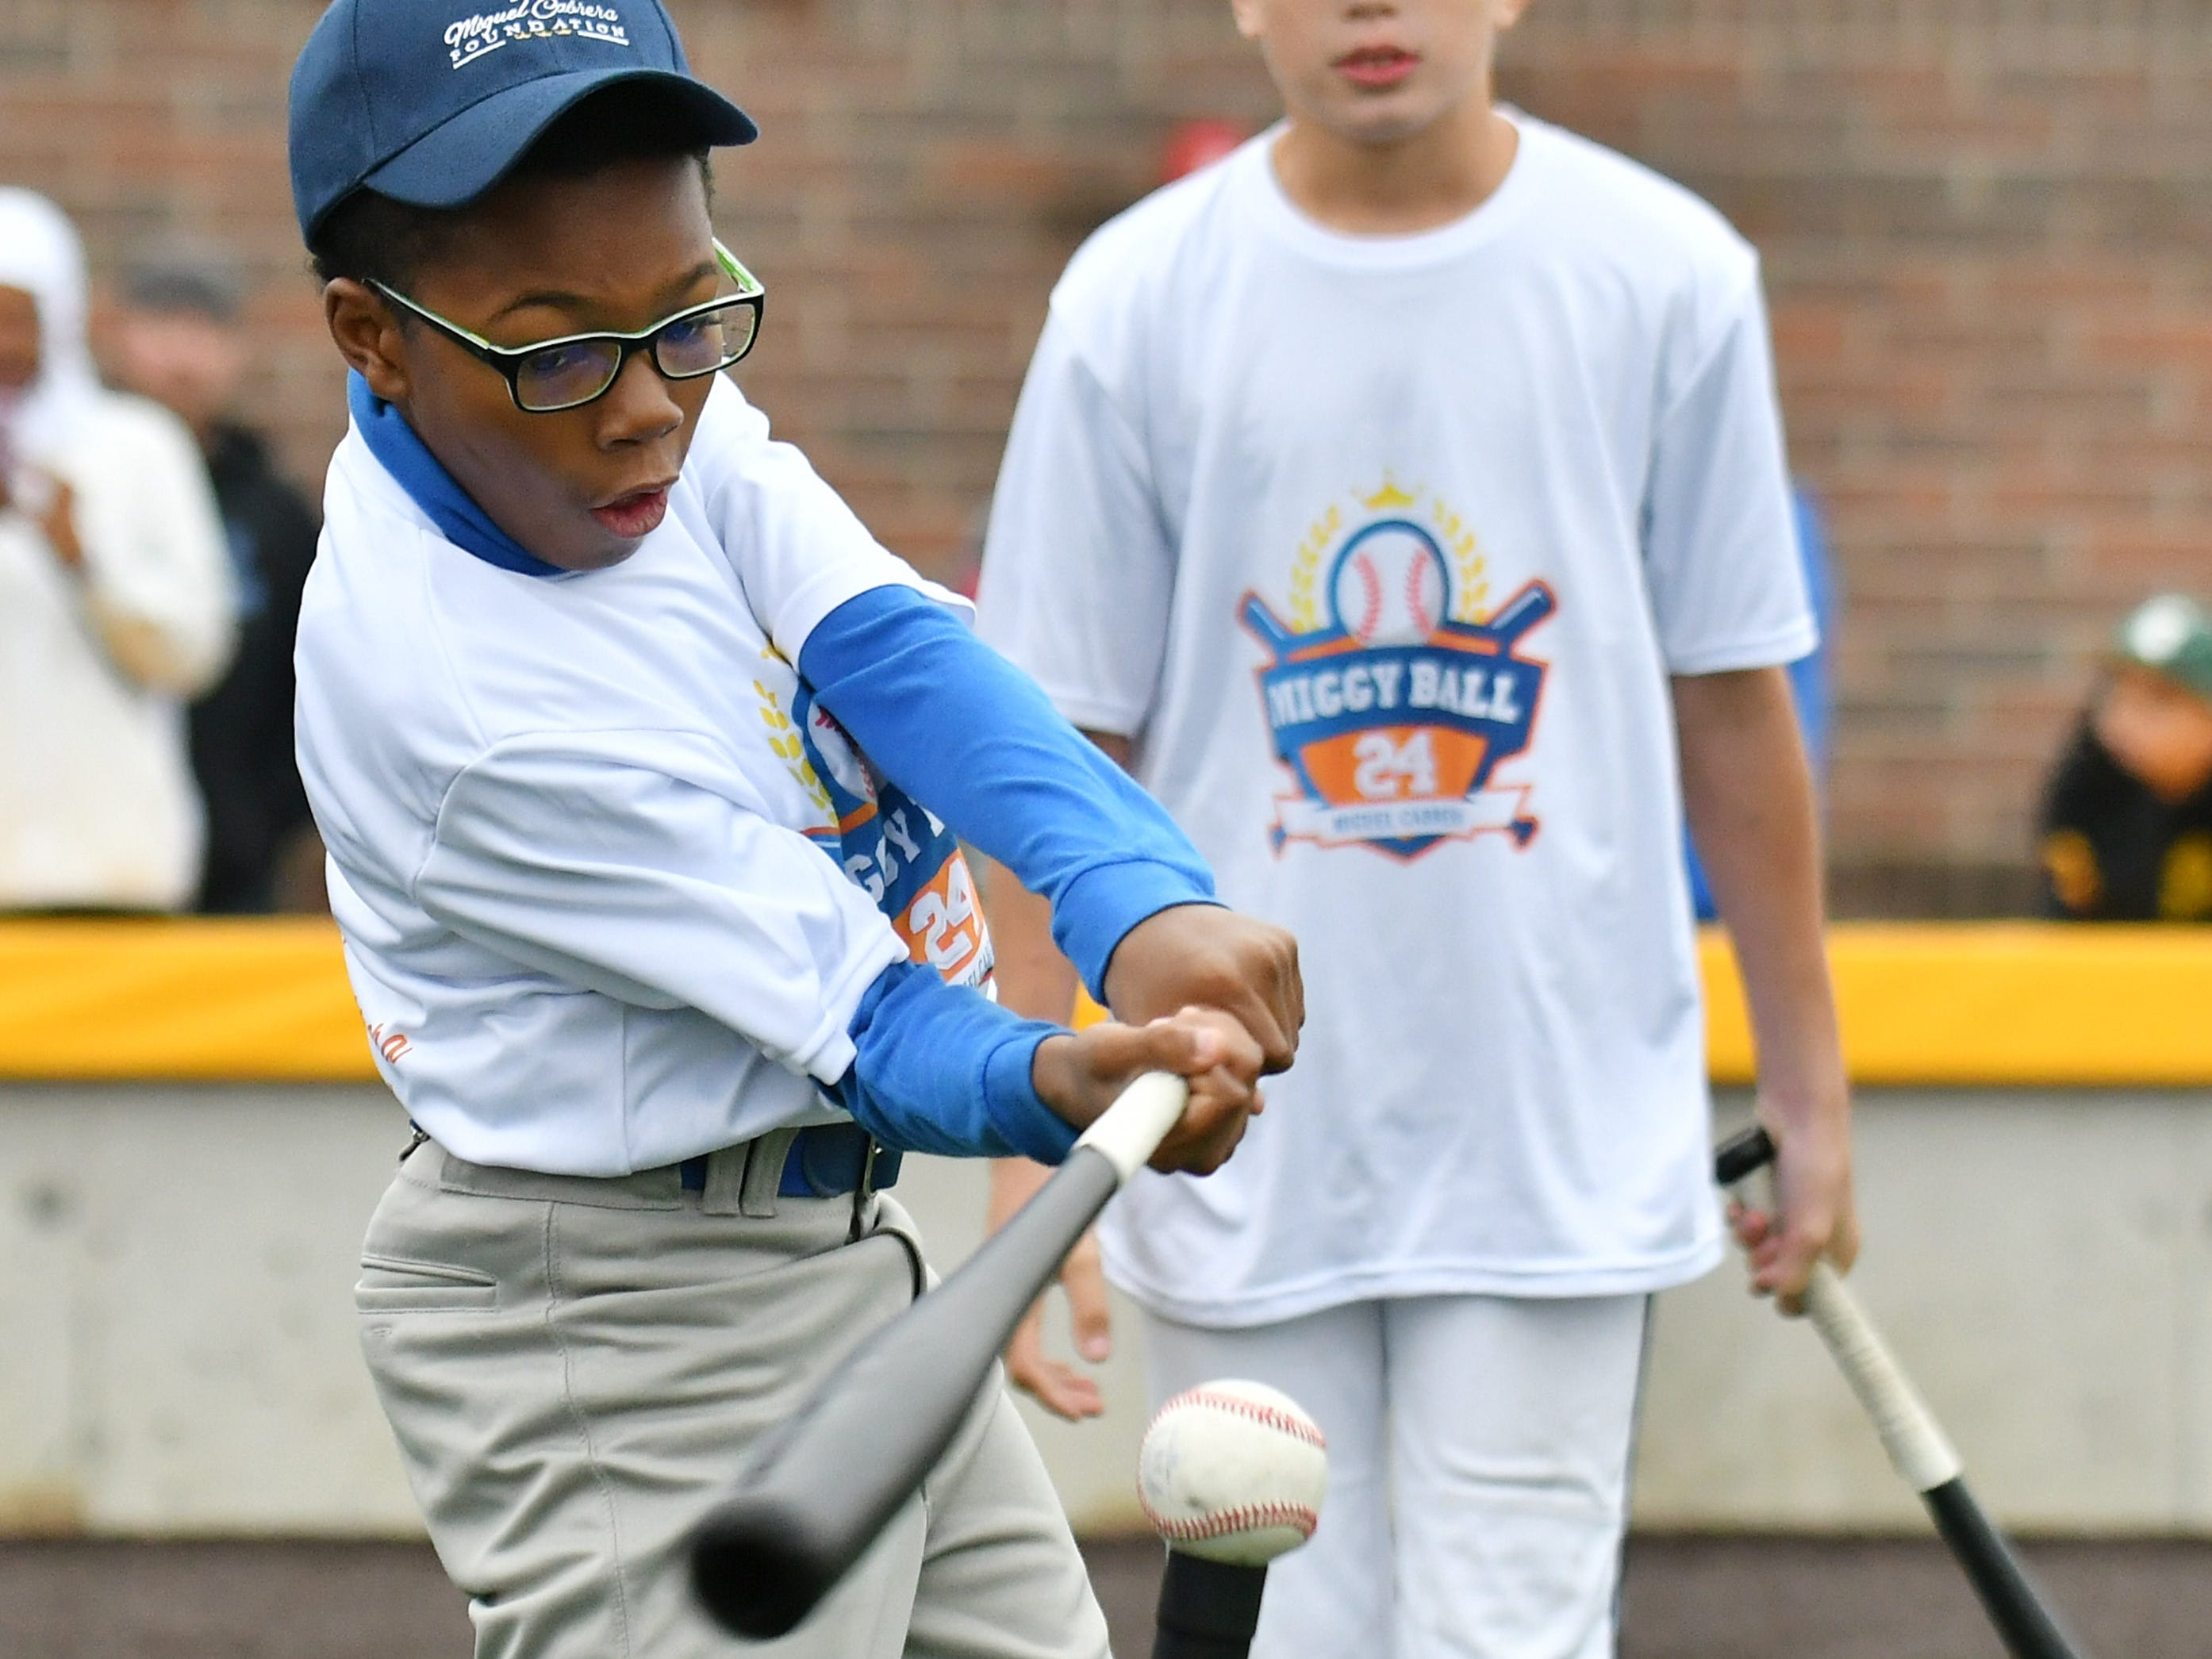 Jermaine Rodgers, 10, of Detroit hits the ball off a tee.